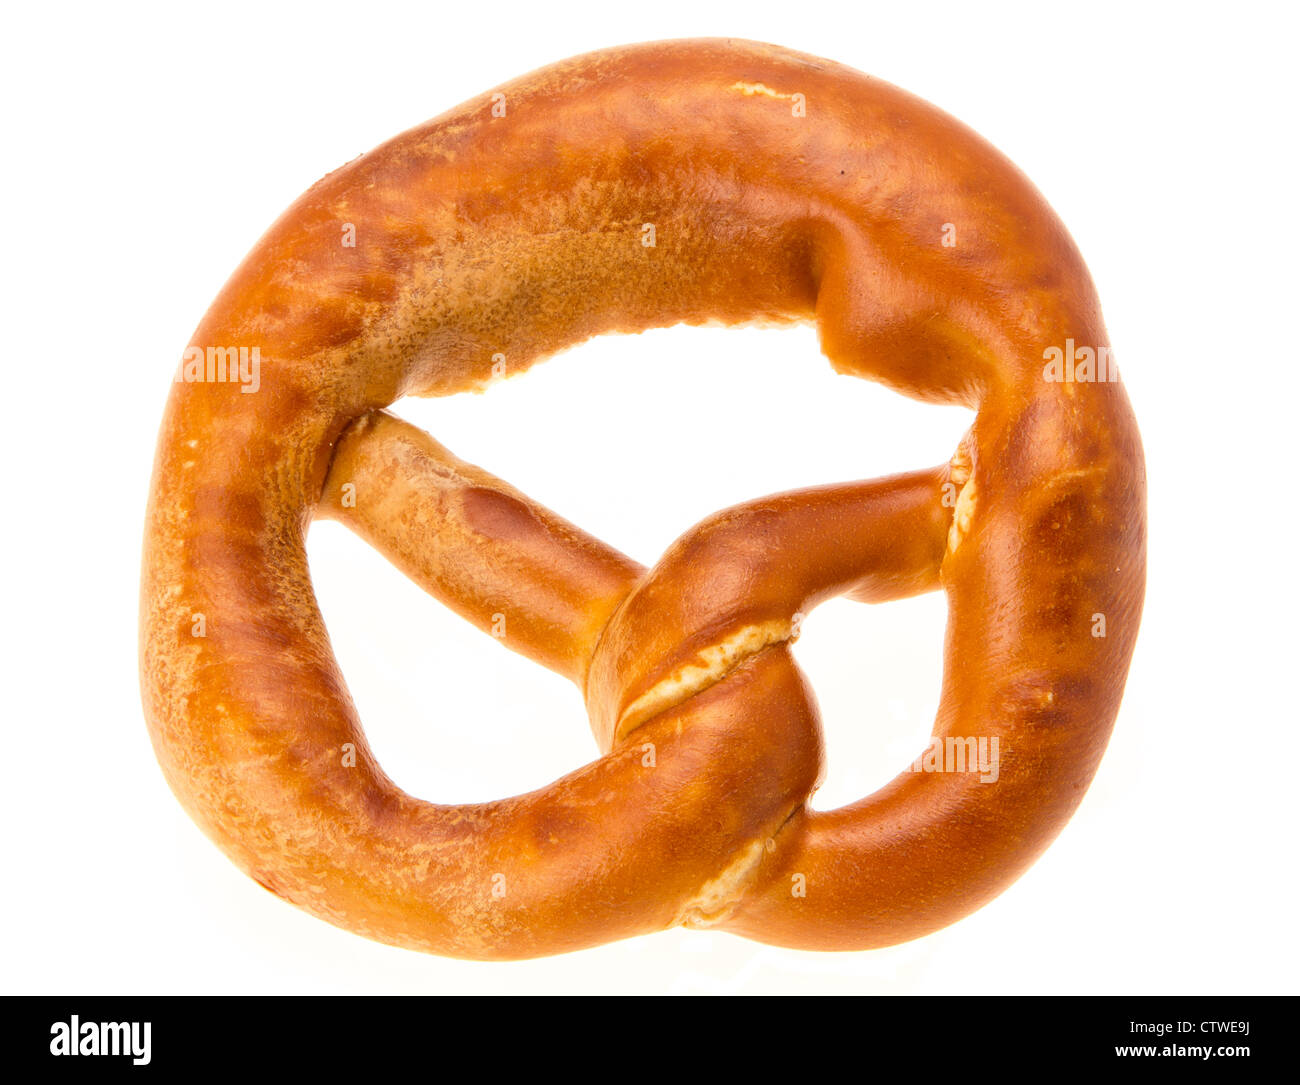 Pretzel - studio shot with a white background - Stock Image